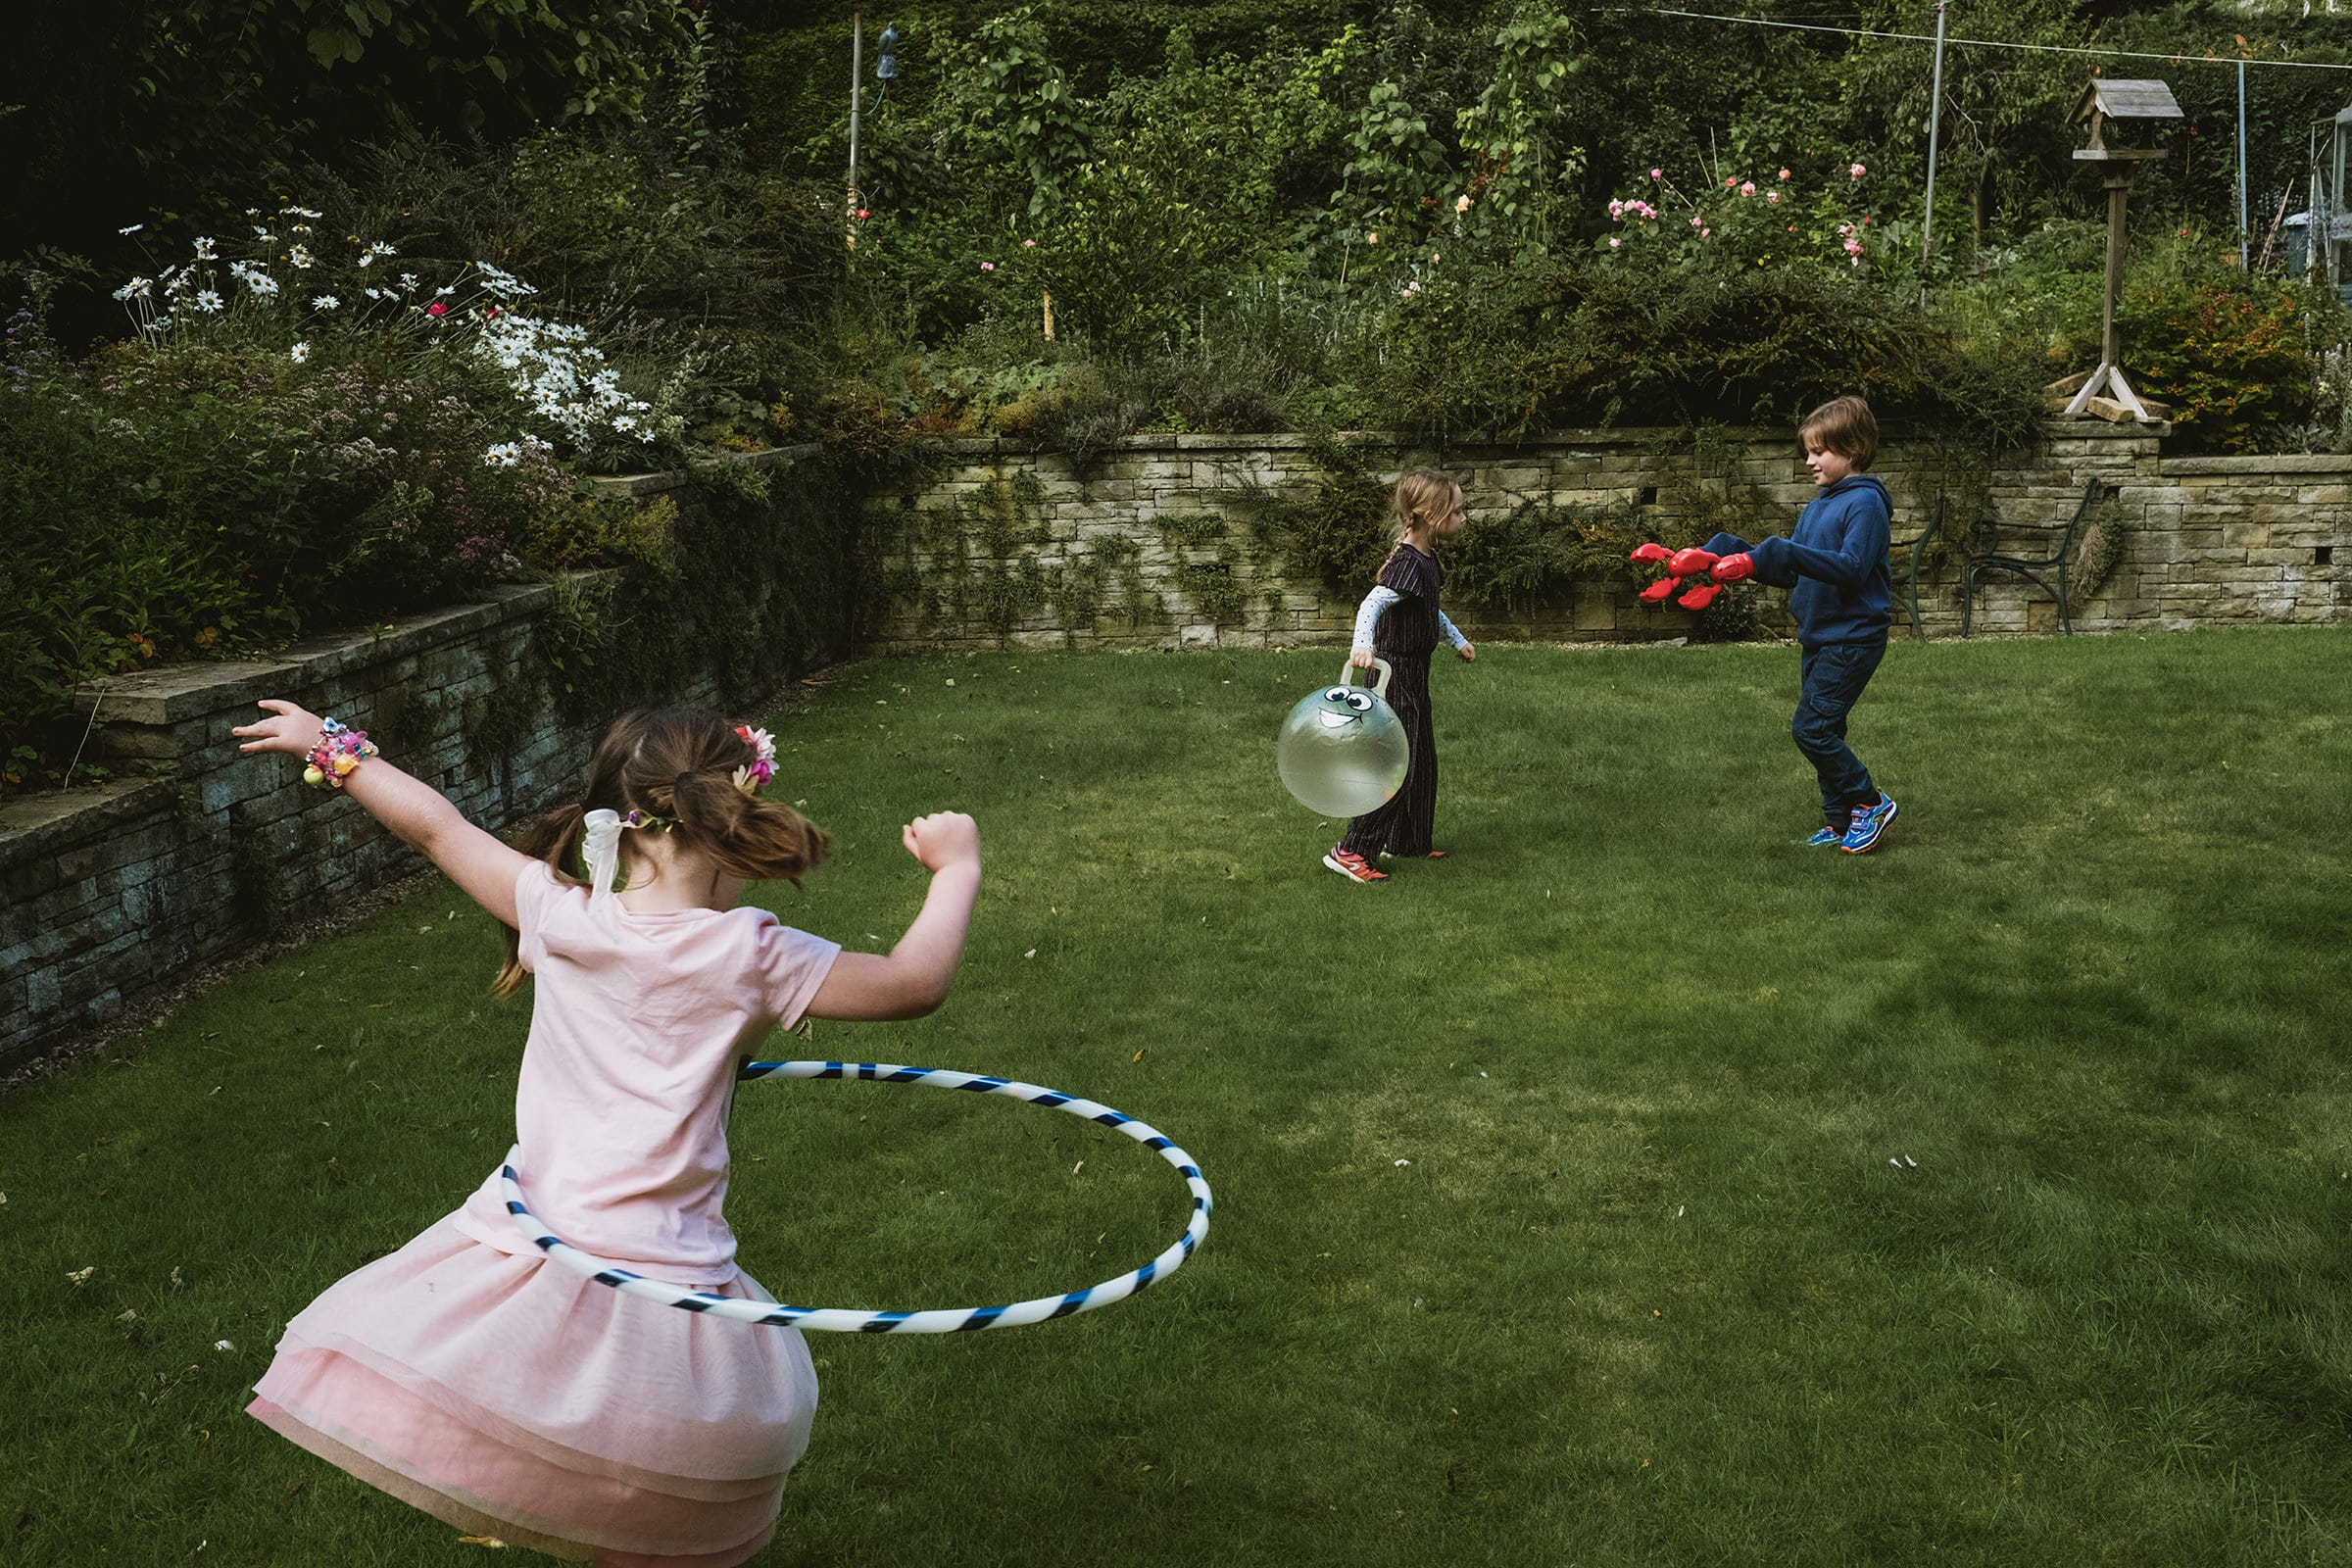 Family Photoshoot at home in the garden by Family Photographers York Place Studios. Front left, girl plays with hula hoop ring, her back to the camera. To her left in the background a girl carries a spacehopper whilst a boy approaches her with toy lobster hands